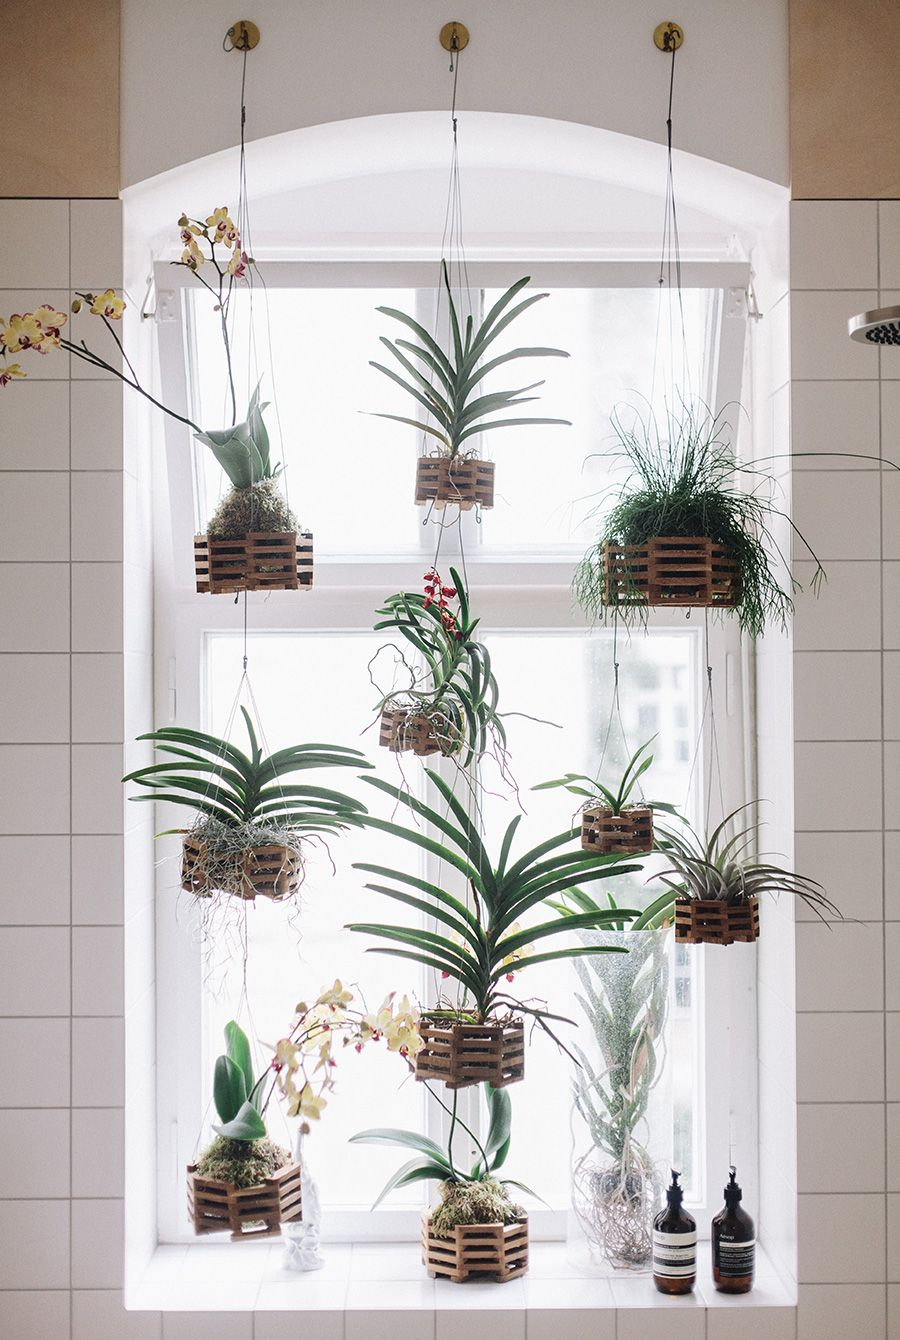 dream home hanging plants in window fvf apartment feature on cereal magazine dream home. Black Bedroom Furniture Sets. Home Design Ideas